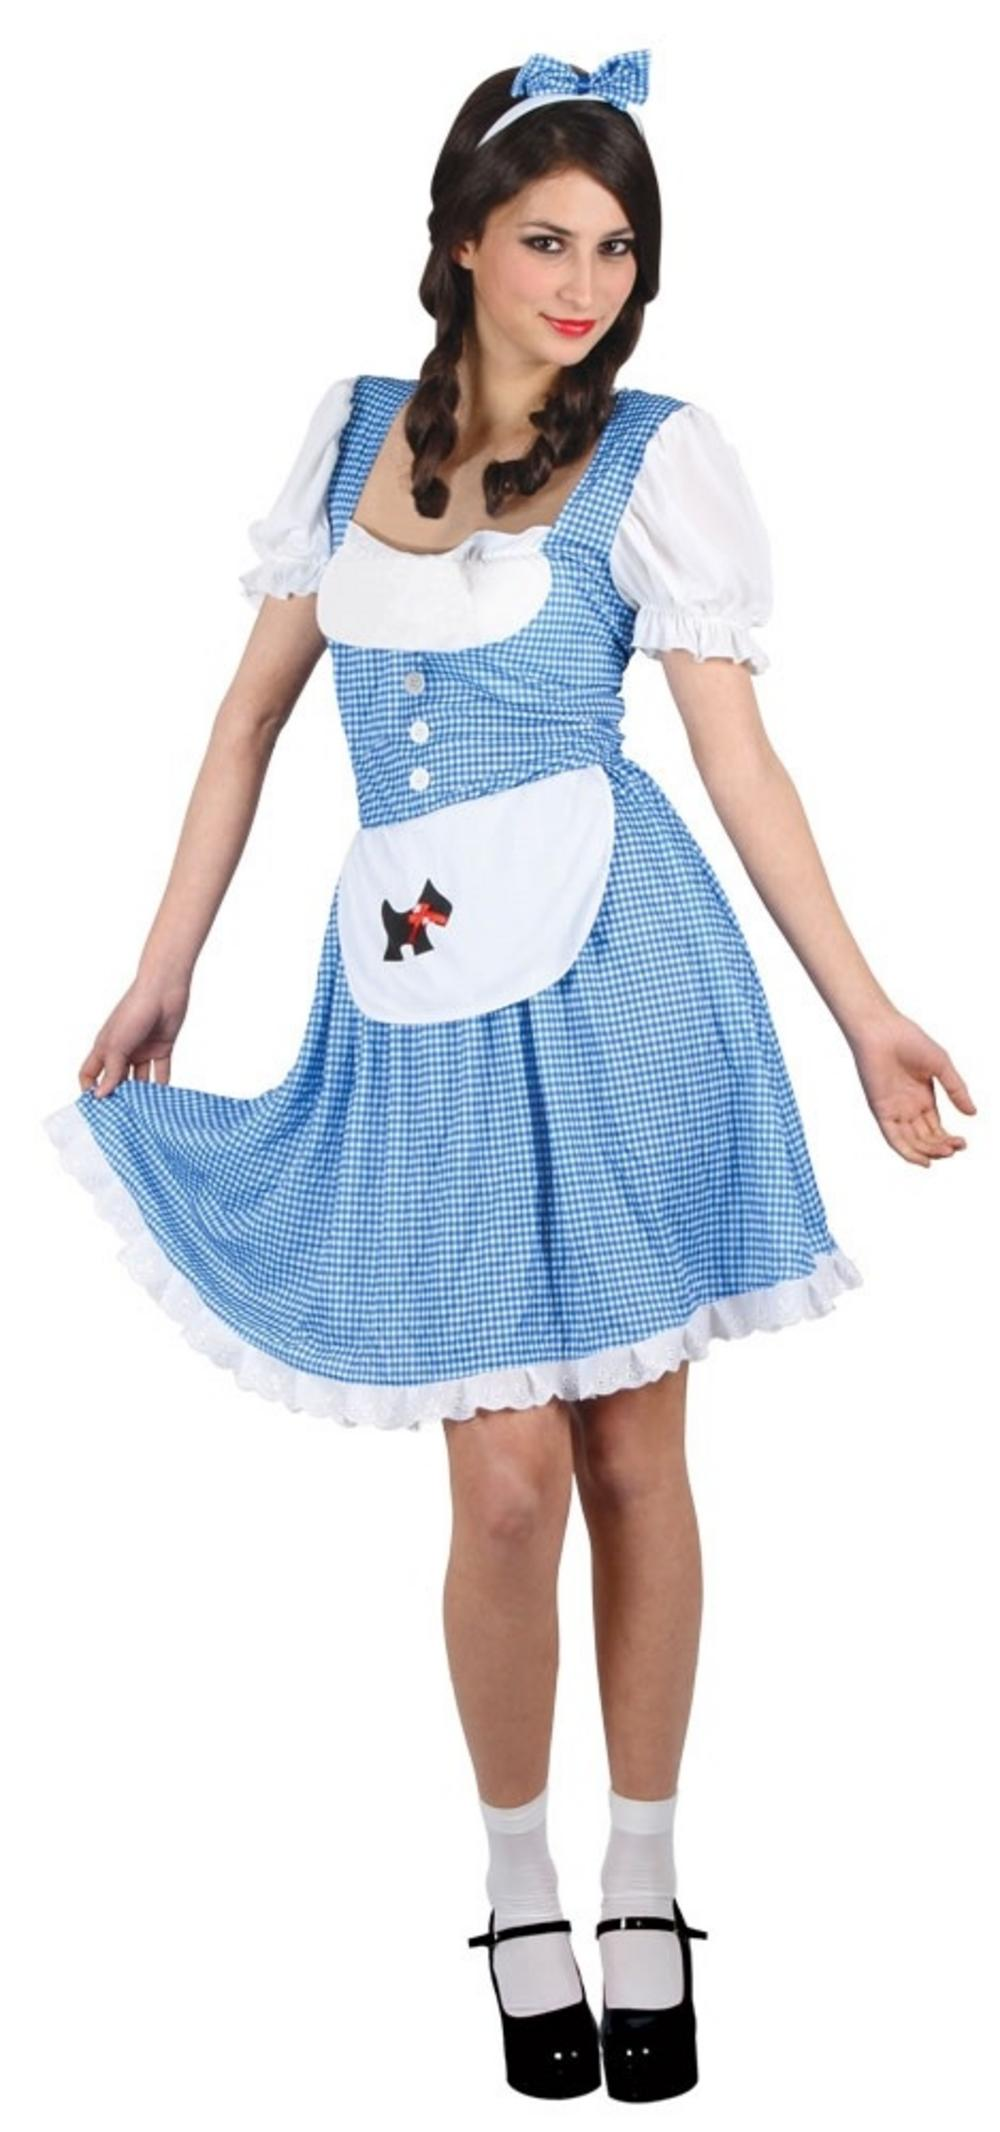 Darling Dorothy Costume  sc 1 st  Mega Fancy Dress & Darling Dorothy Costume | All Ladies Costumes | Mega Fancy Dress